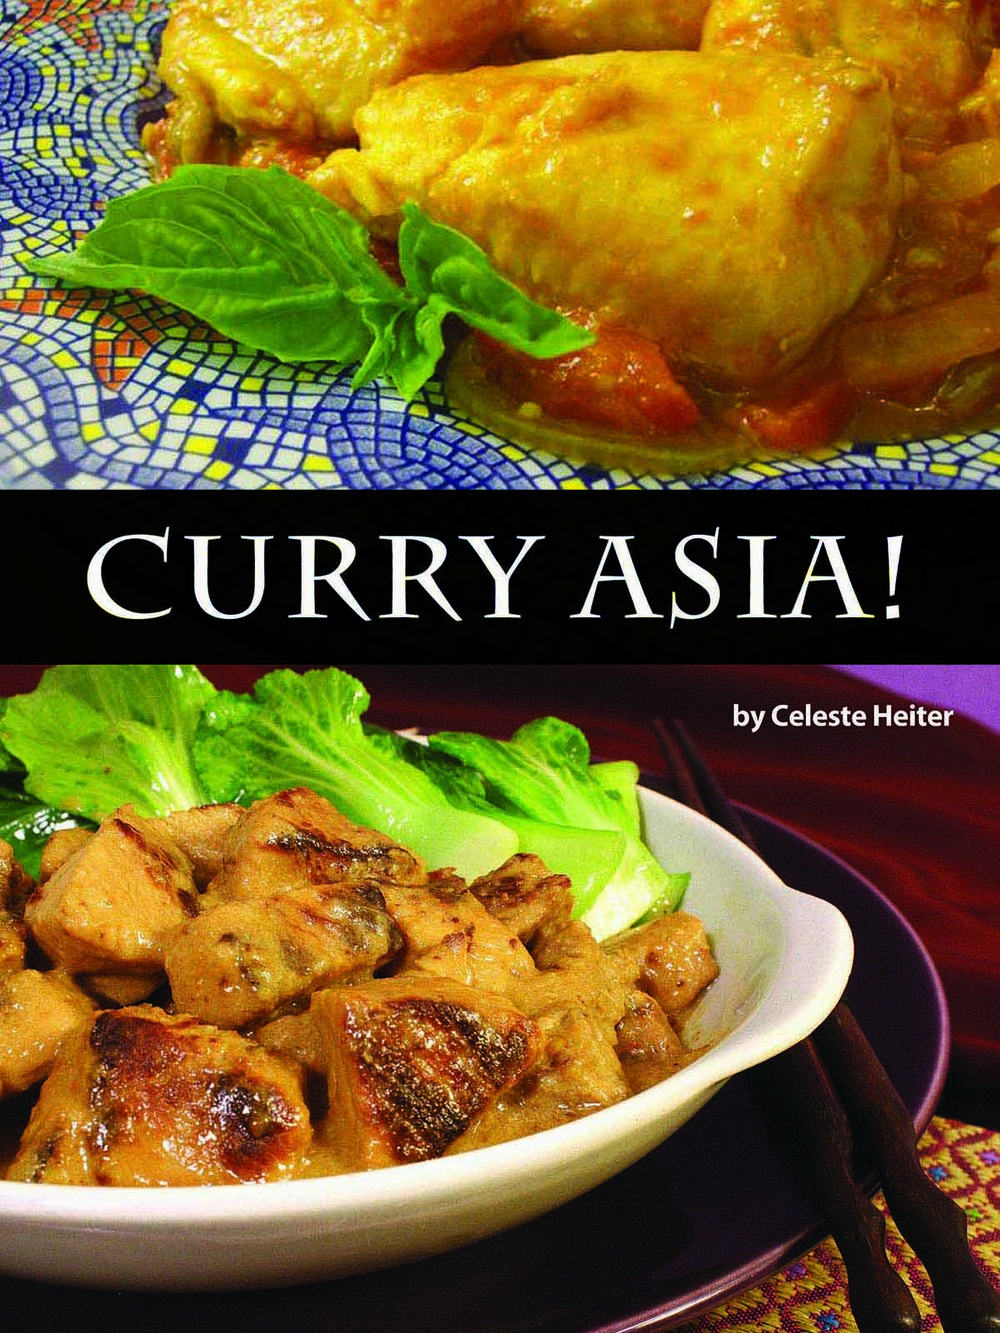 Curry Asia!